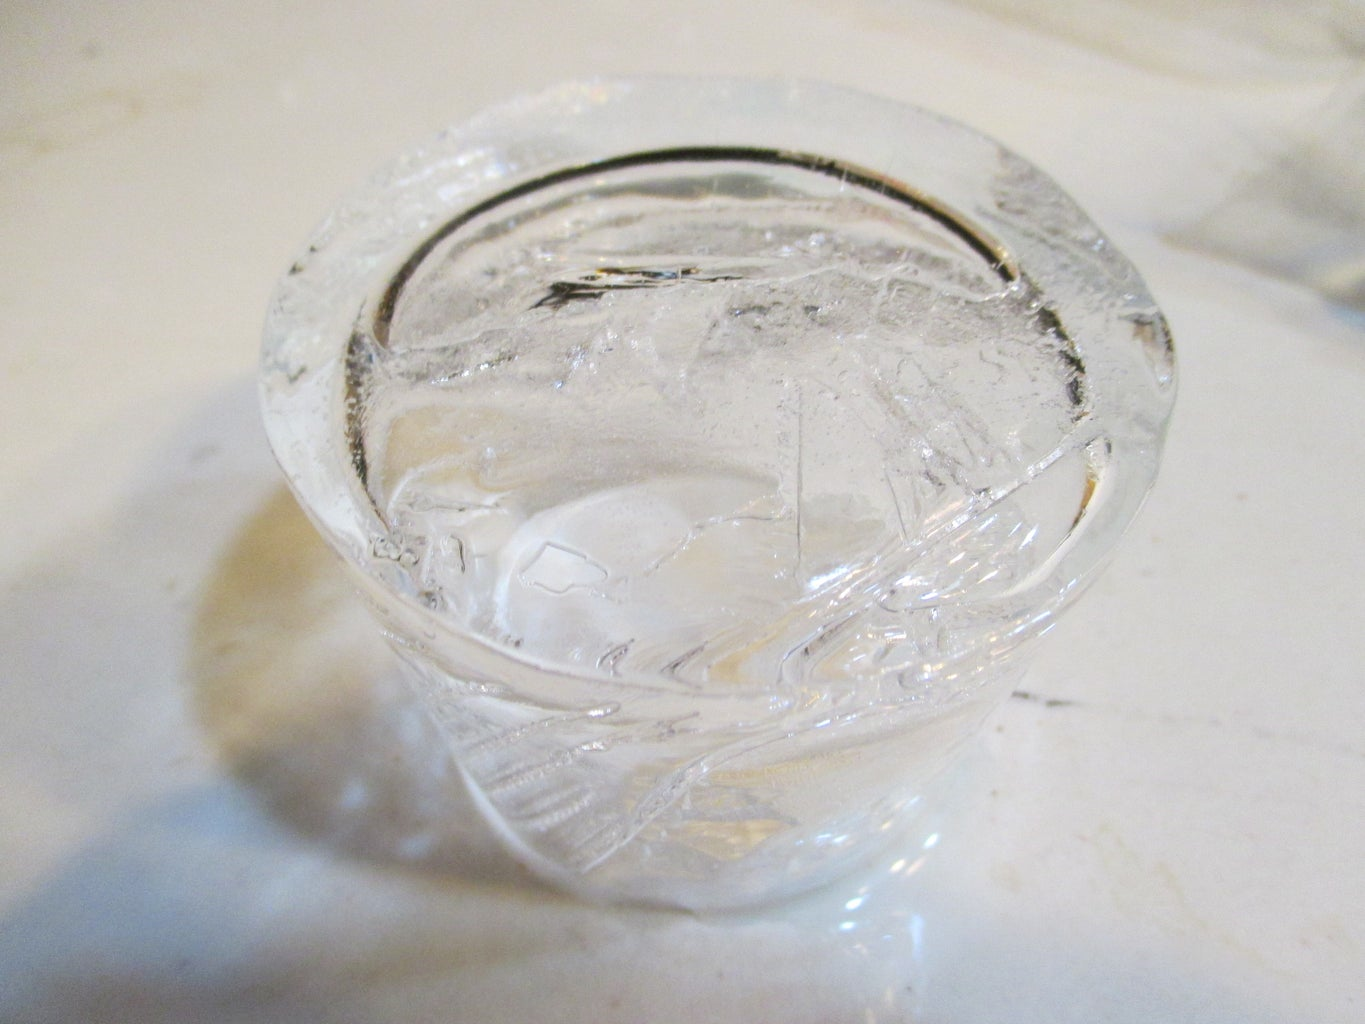 Letting the Yogurt Cup Filled With Water Freeze Partially.